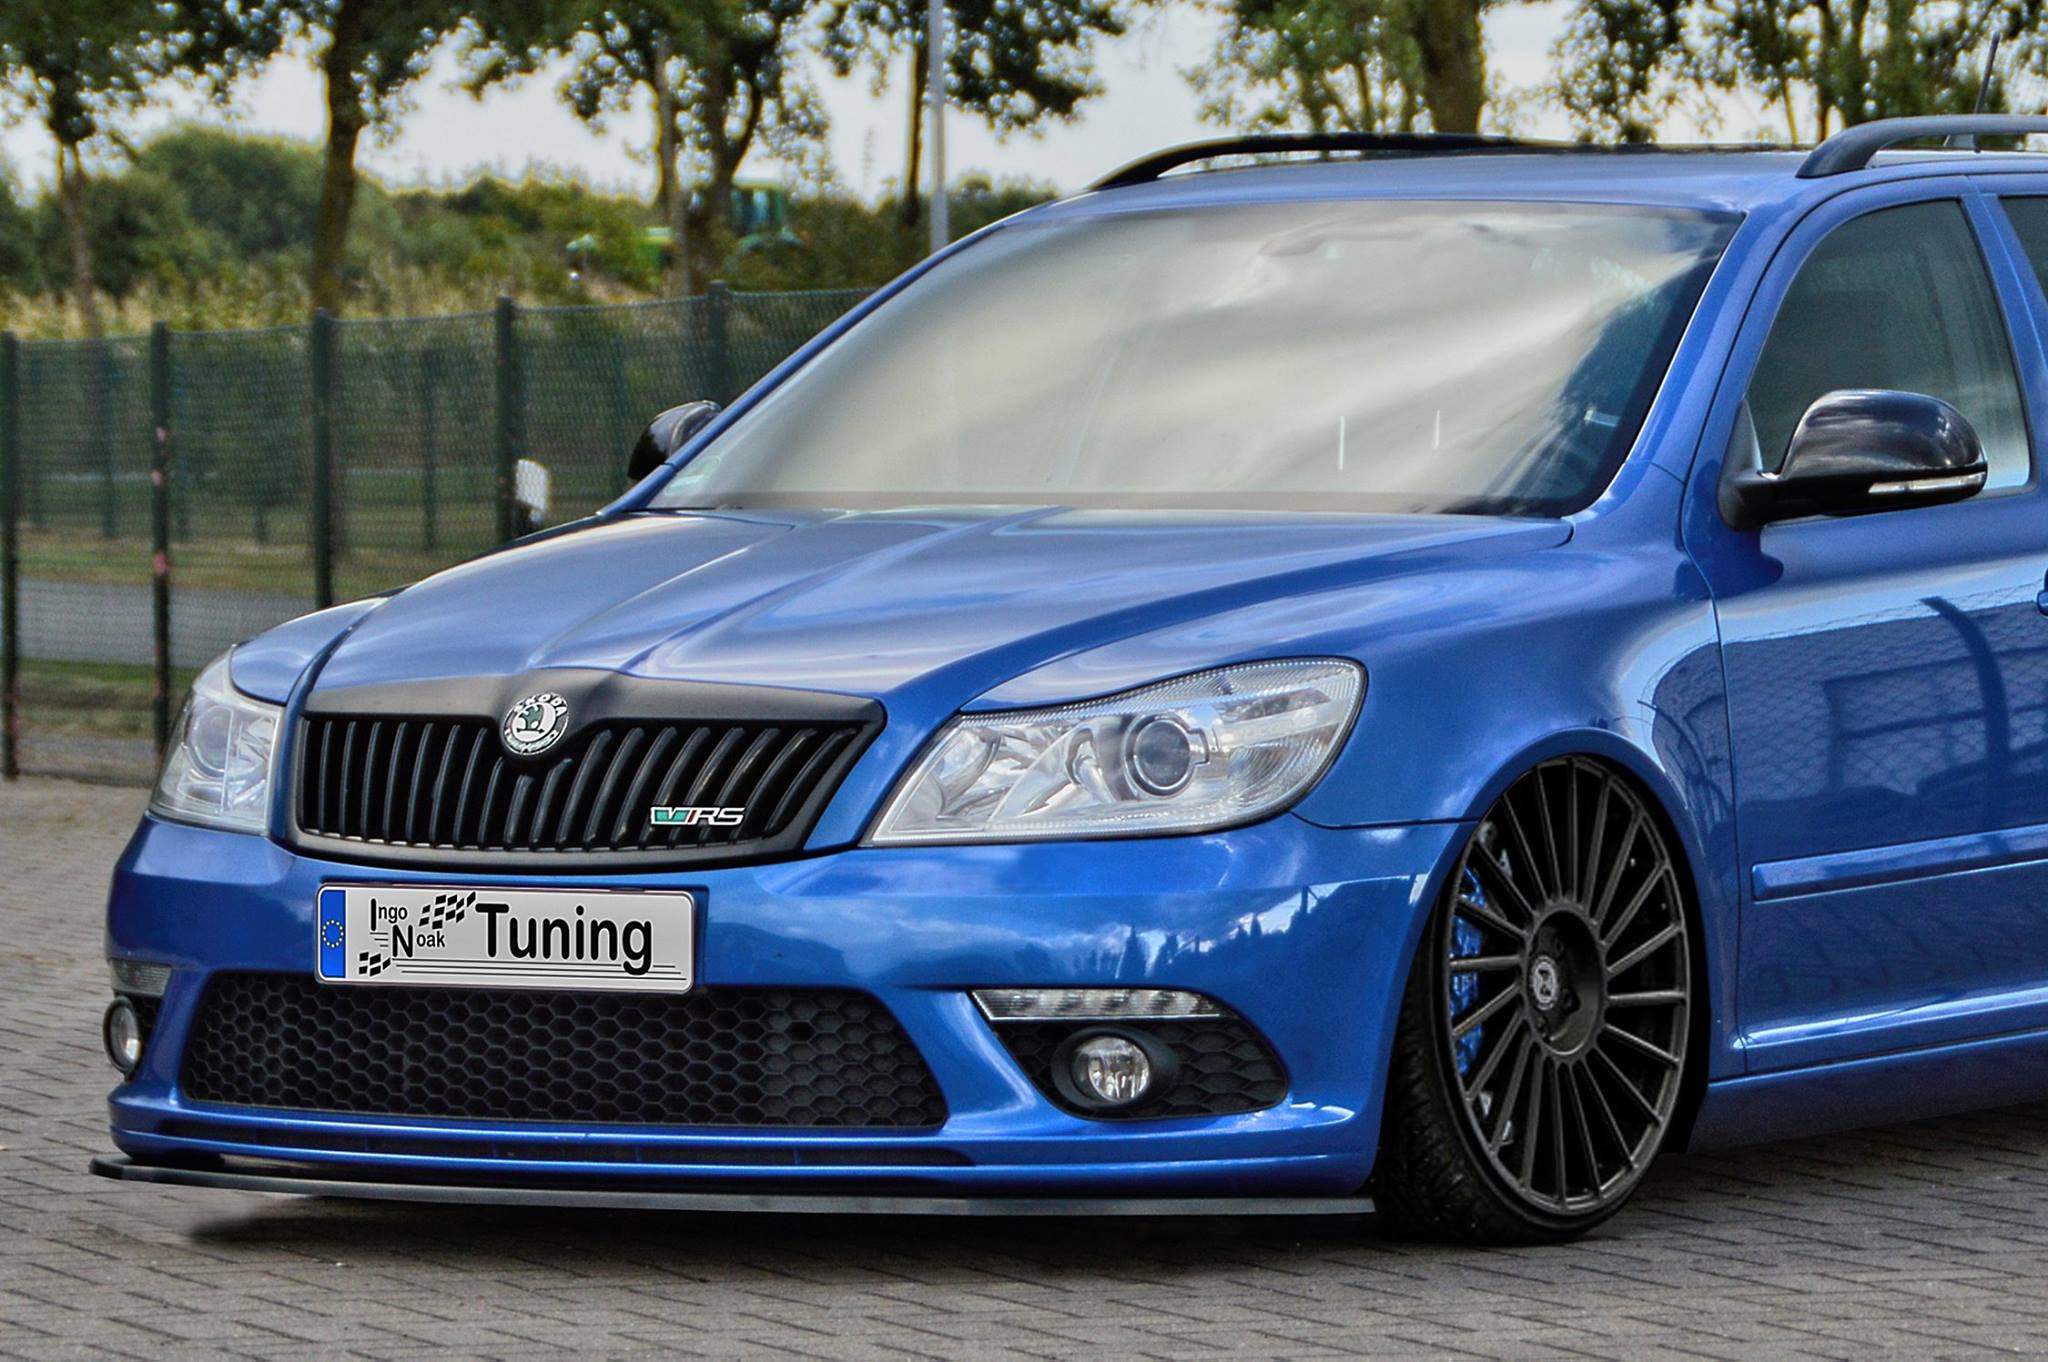 Ingo Noak Custom Splitters Match Every Skoda Rs And Opel